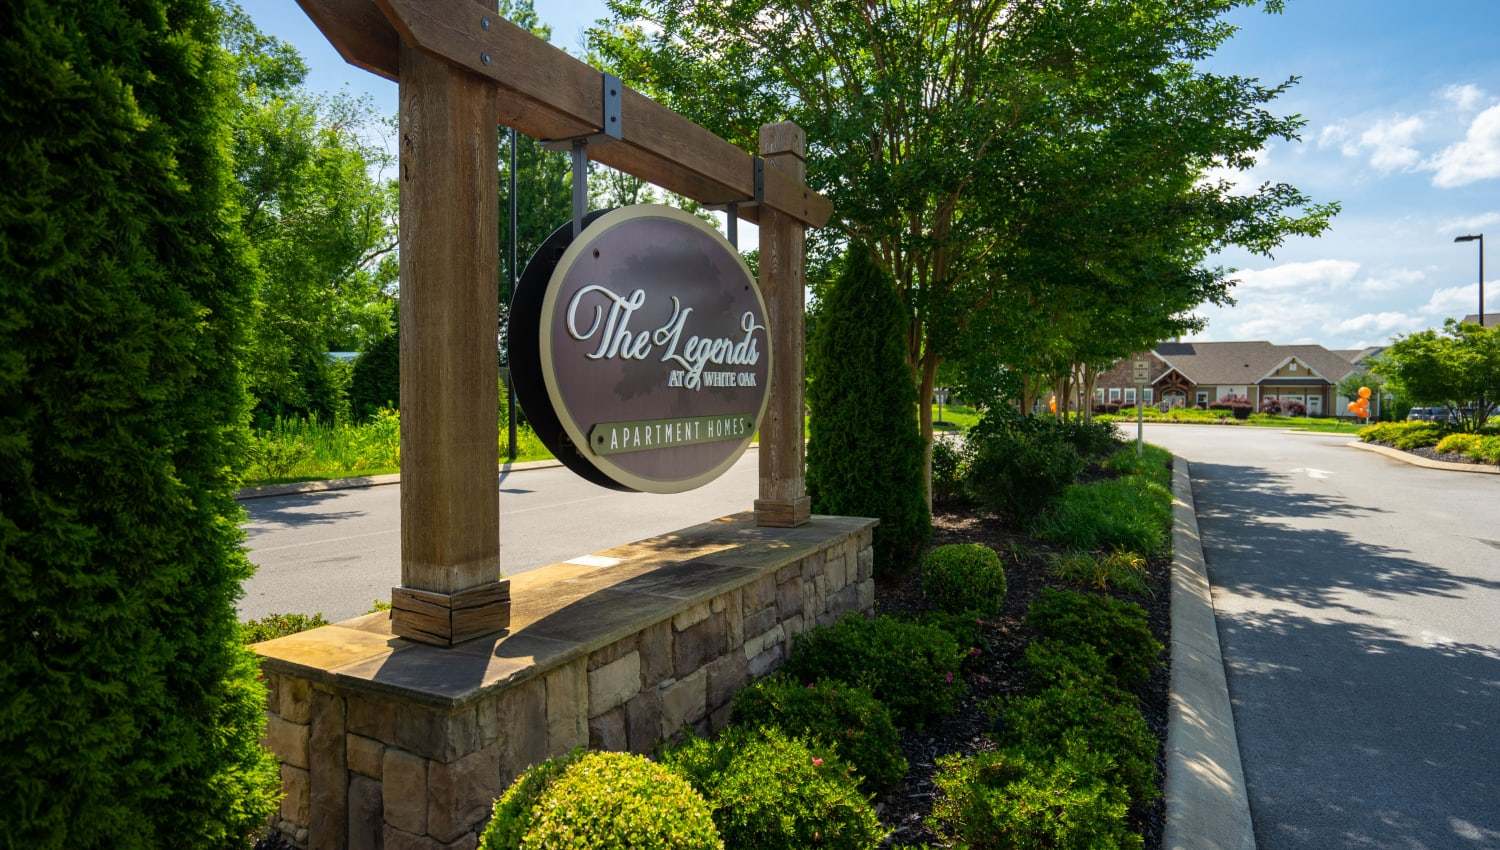 Beautifully maintained landscaping at the entrance to Legends at White Oak in Ooltewah, Tennessee